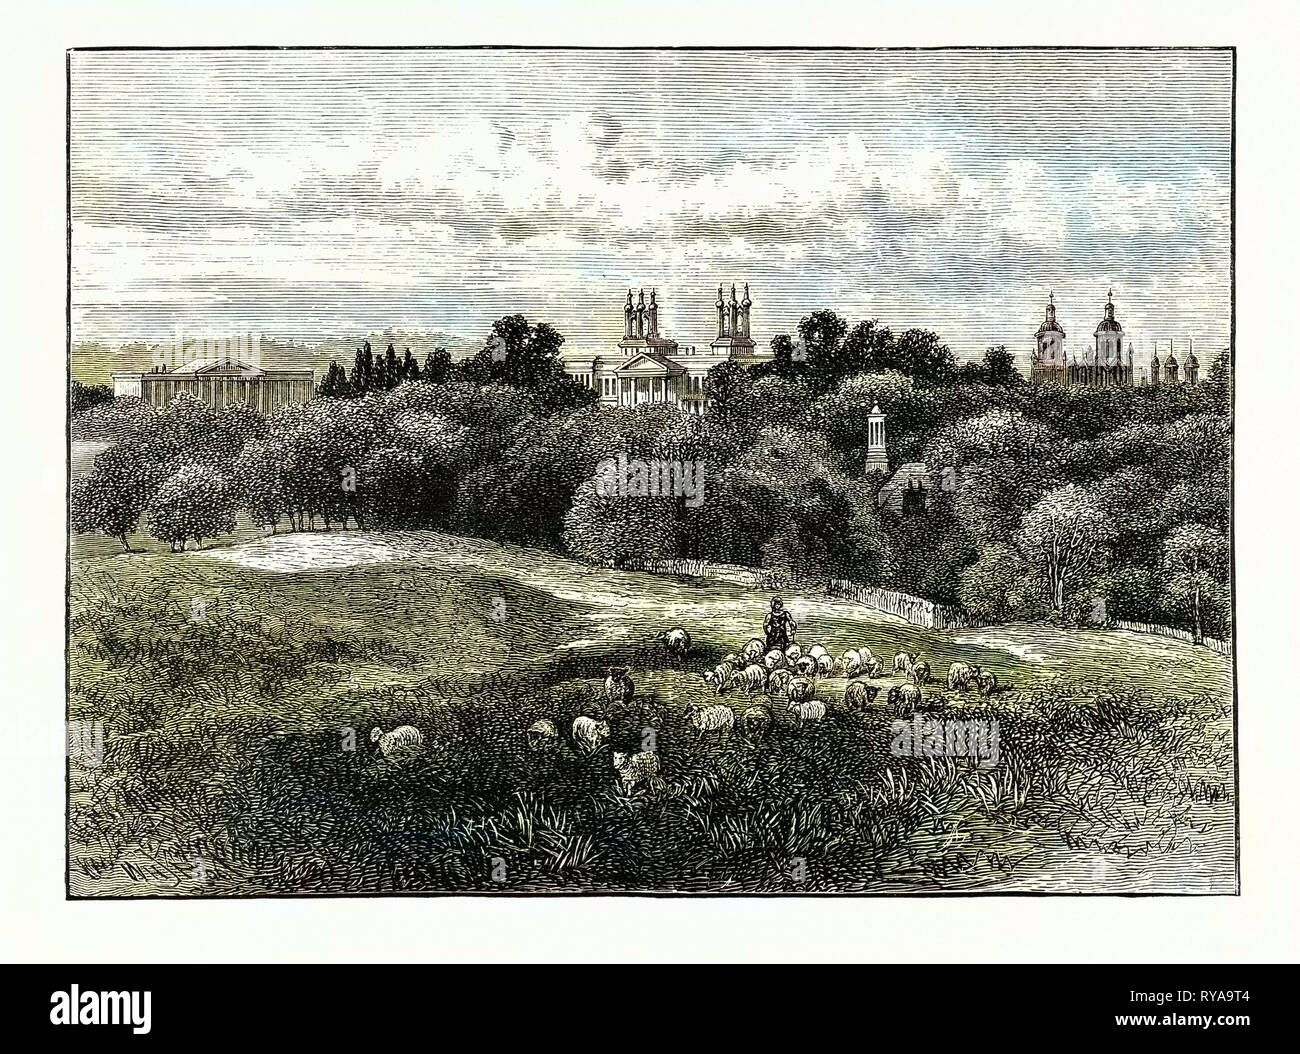 Edinburgh: Watson's Orphans' and Stewart's Hospitals from Drumsheugh Grounds 1859 - Stock Image